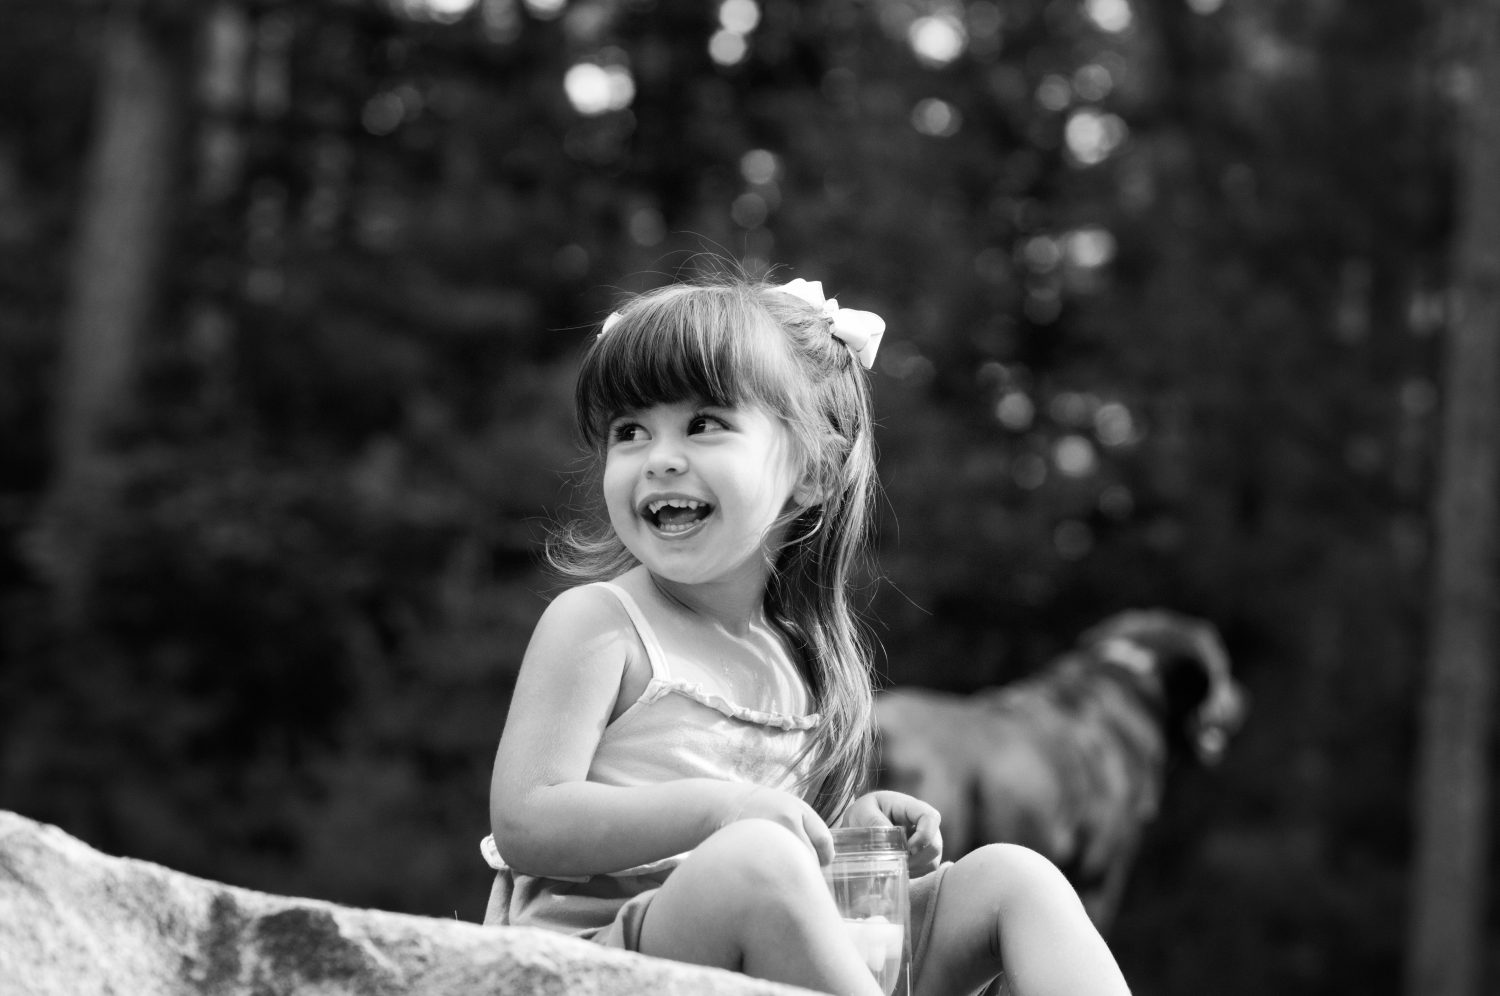 black and white photograph of young girl sitting on the ground laughing